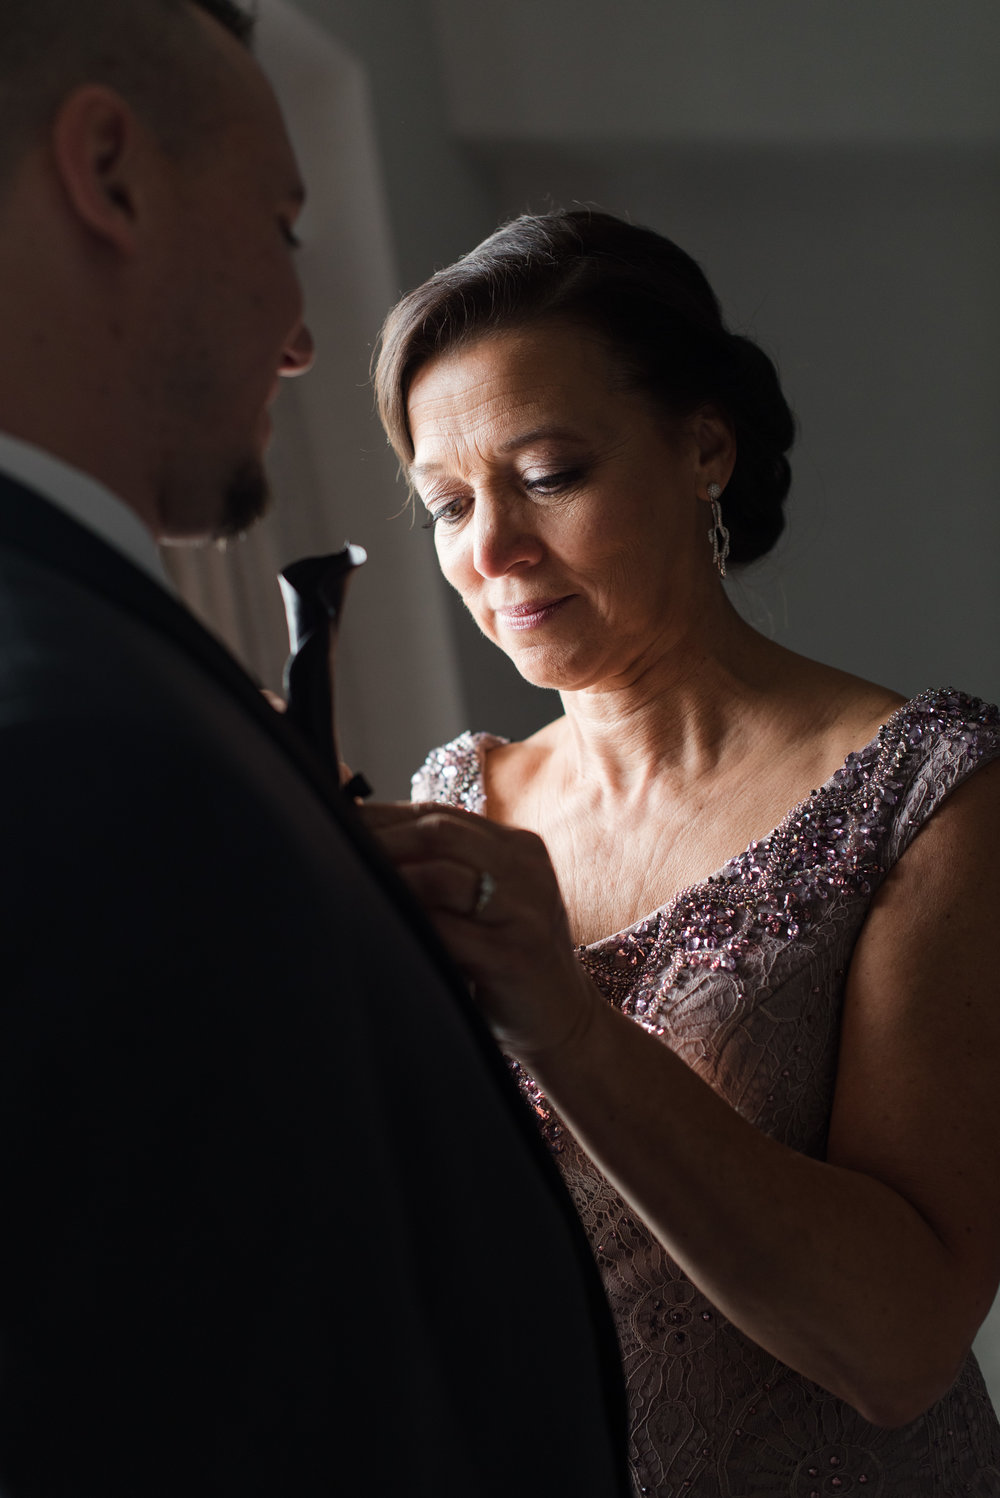 Mother of the groom putting on calla lily boutonniere